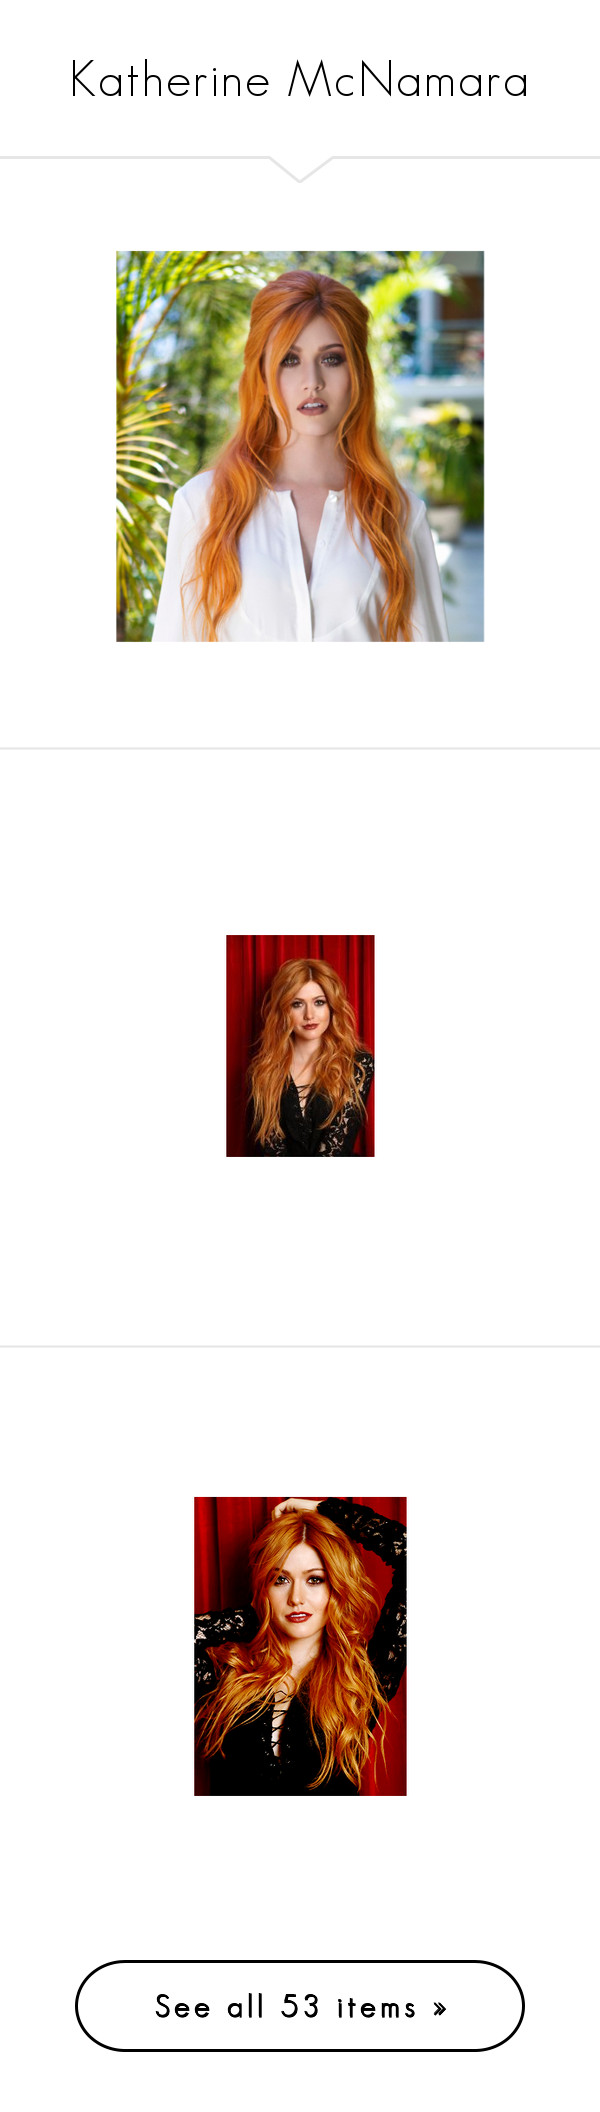 """""""Katherine McNamara"""" by emma-frost-98 ❤ liked on Polyvore featuring katherine mcnamara, kat mcnamara, shadowhunters, people, hair, cheveux, girls, models, pictures and accessories"""